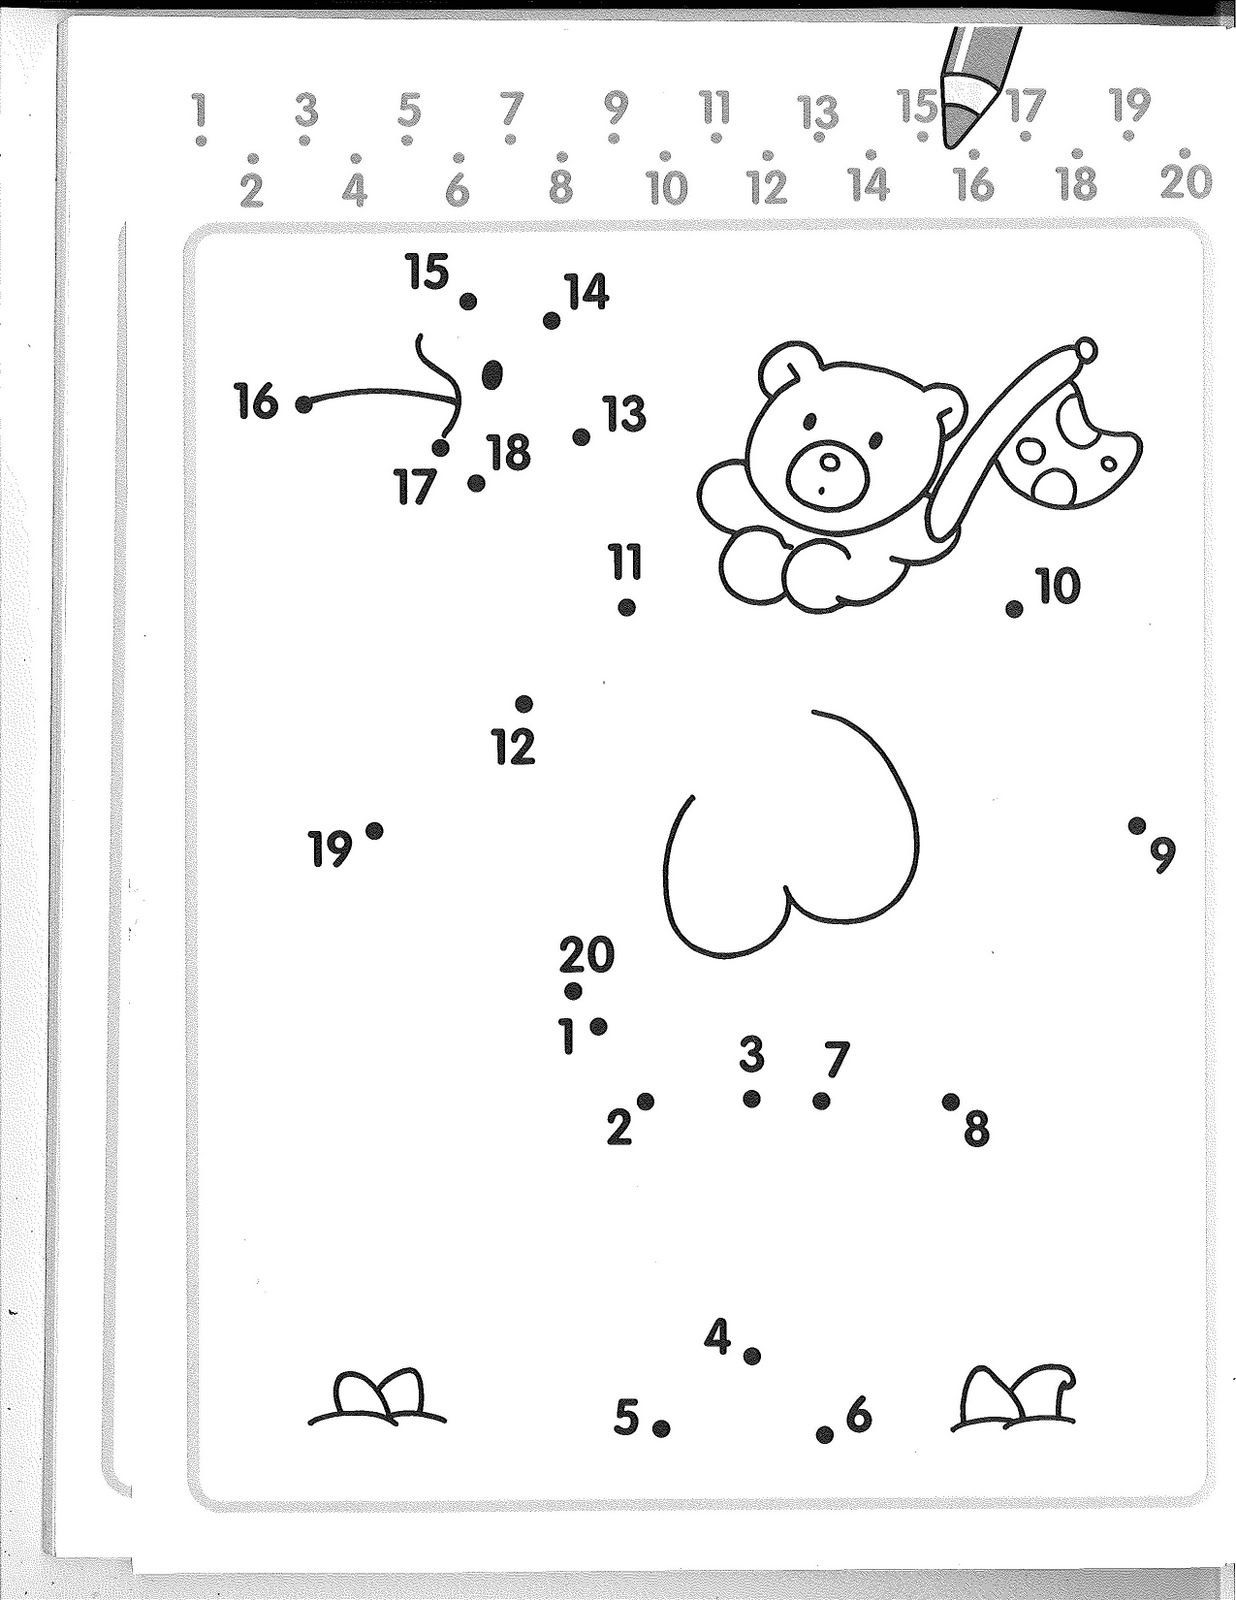 Connect the Dots Math Worksheets Numbers Dot to Kindergarten Worksheets Dots Connect the Free